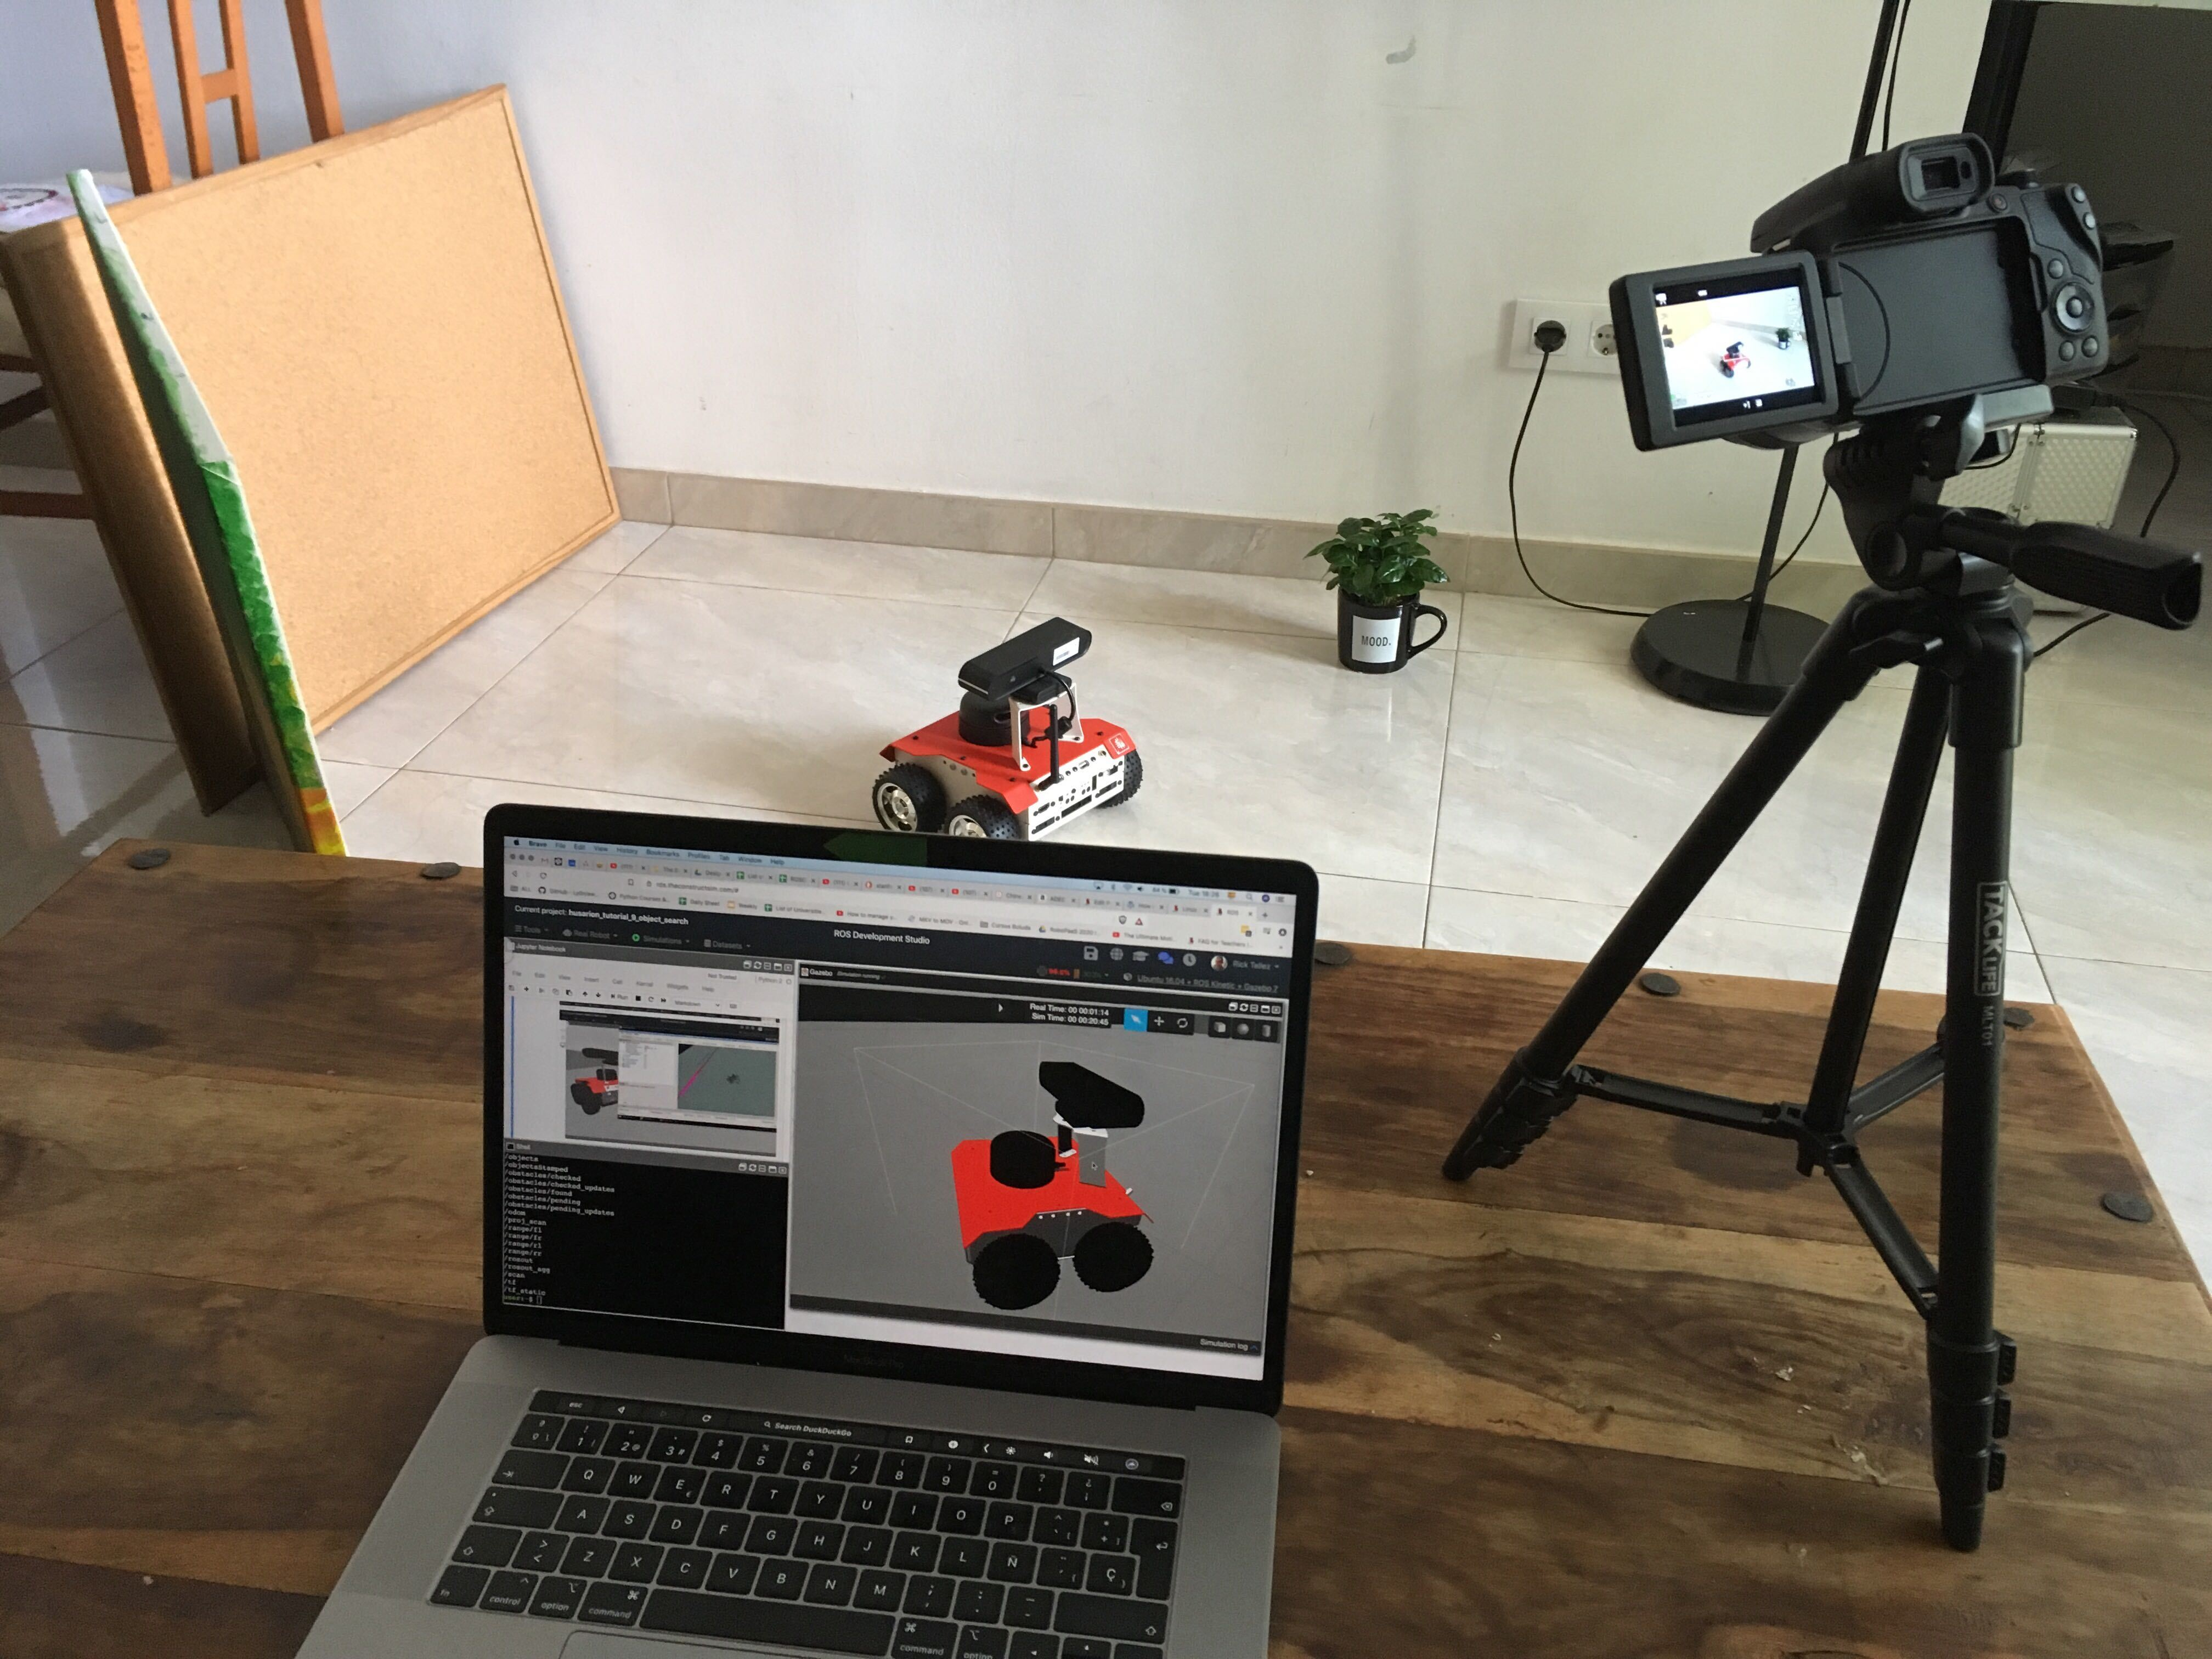 Teaching Robotics to University Students from Home